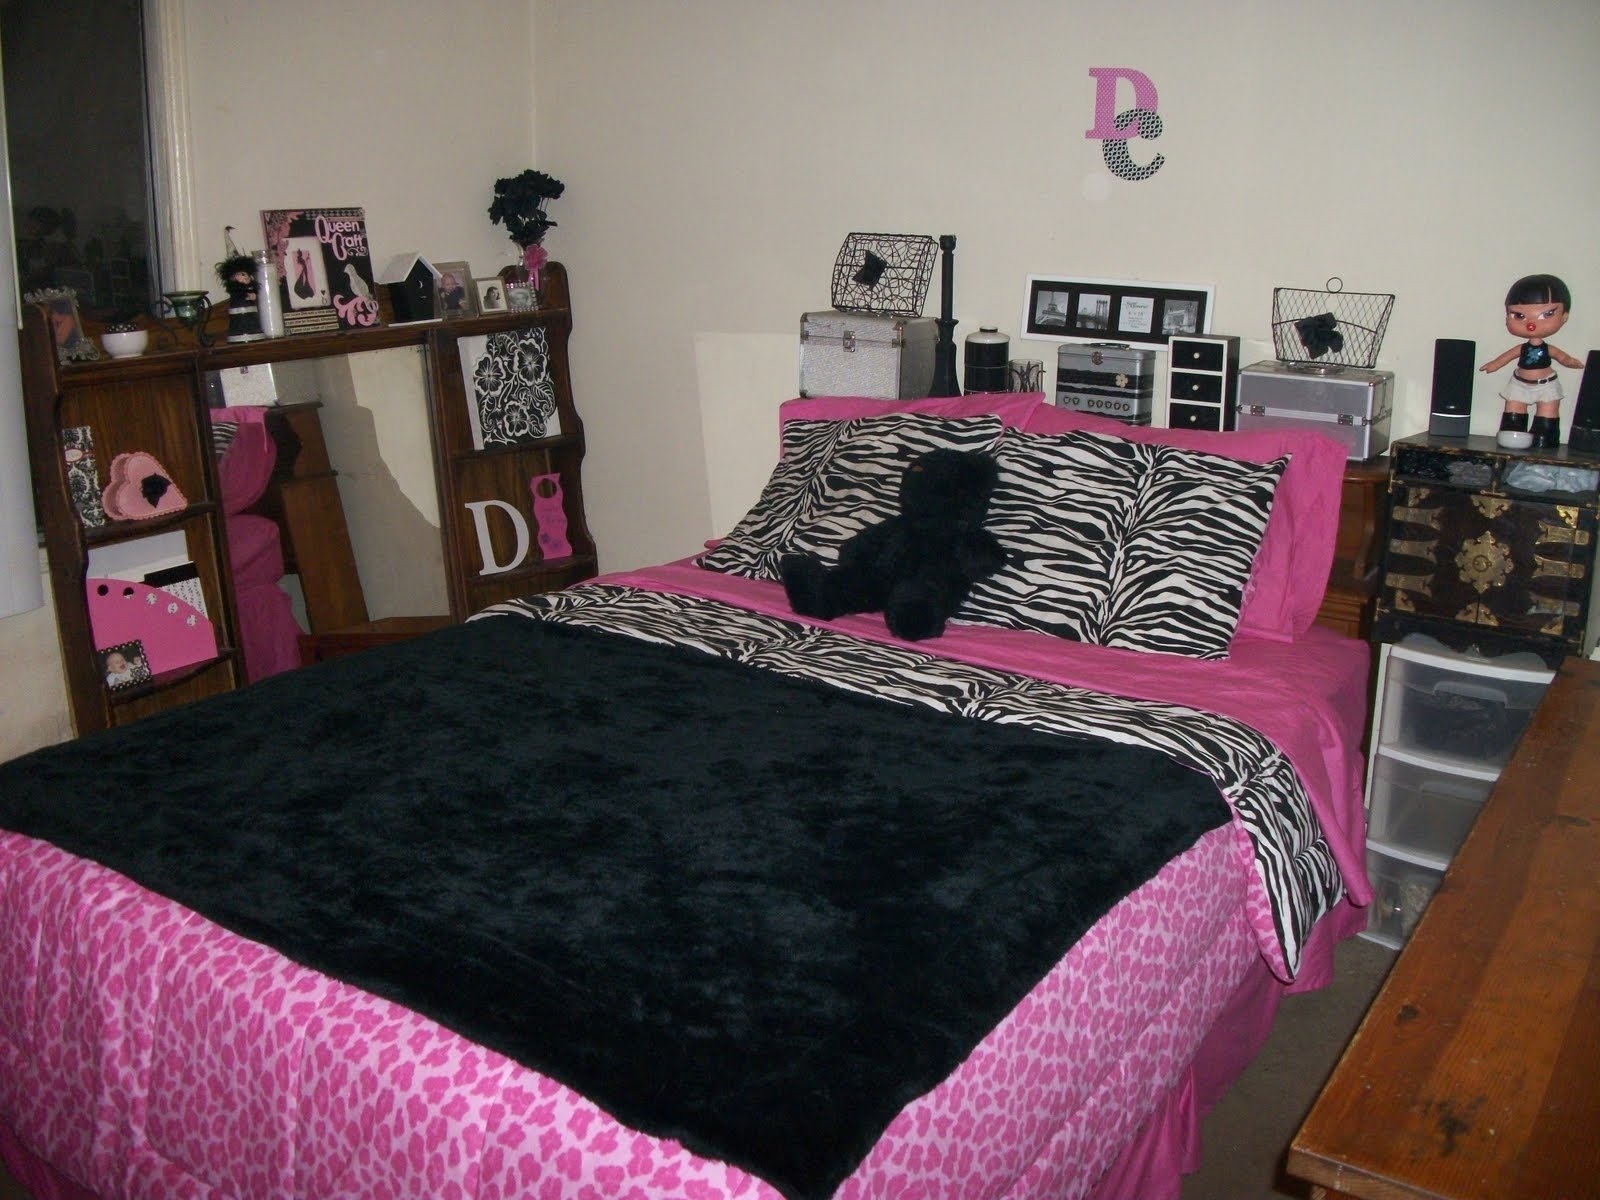 10 Nice Pink Black And White Bedroom Ideas attractive white and pink bedroom ideas related to home decorating 2020